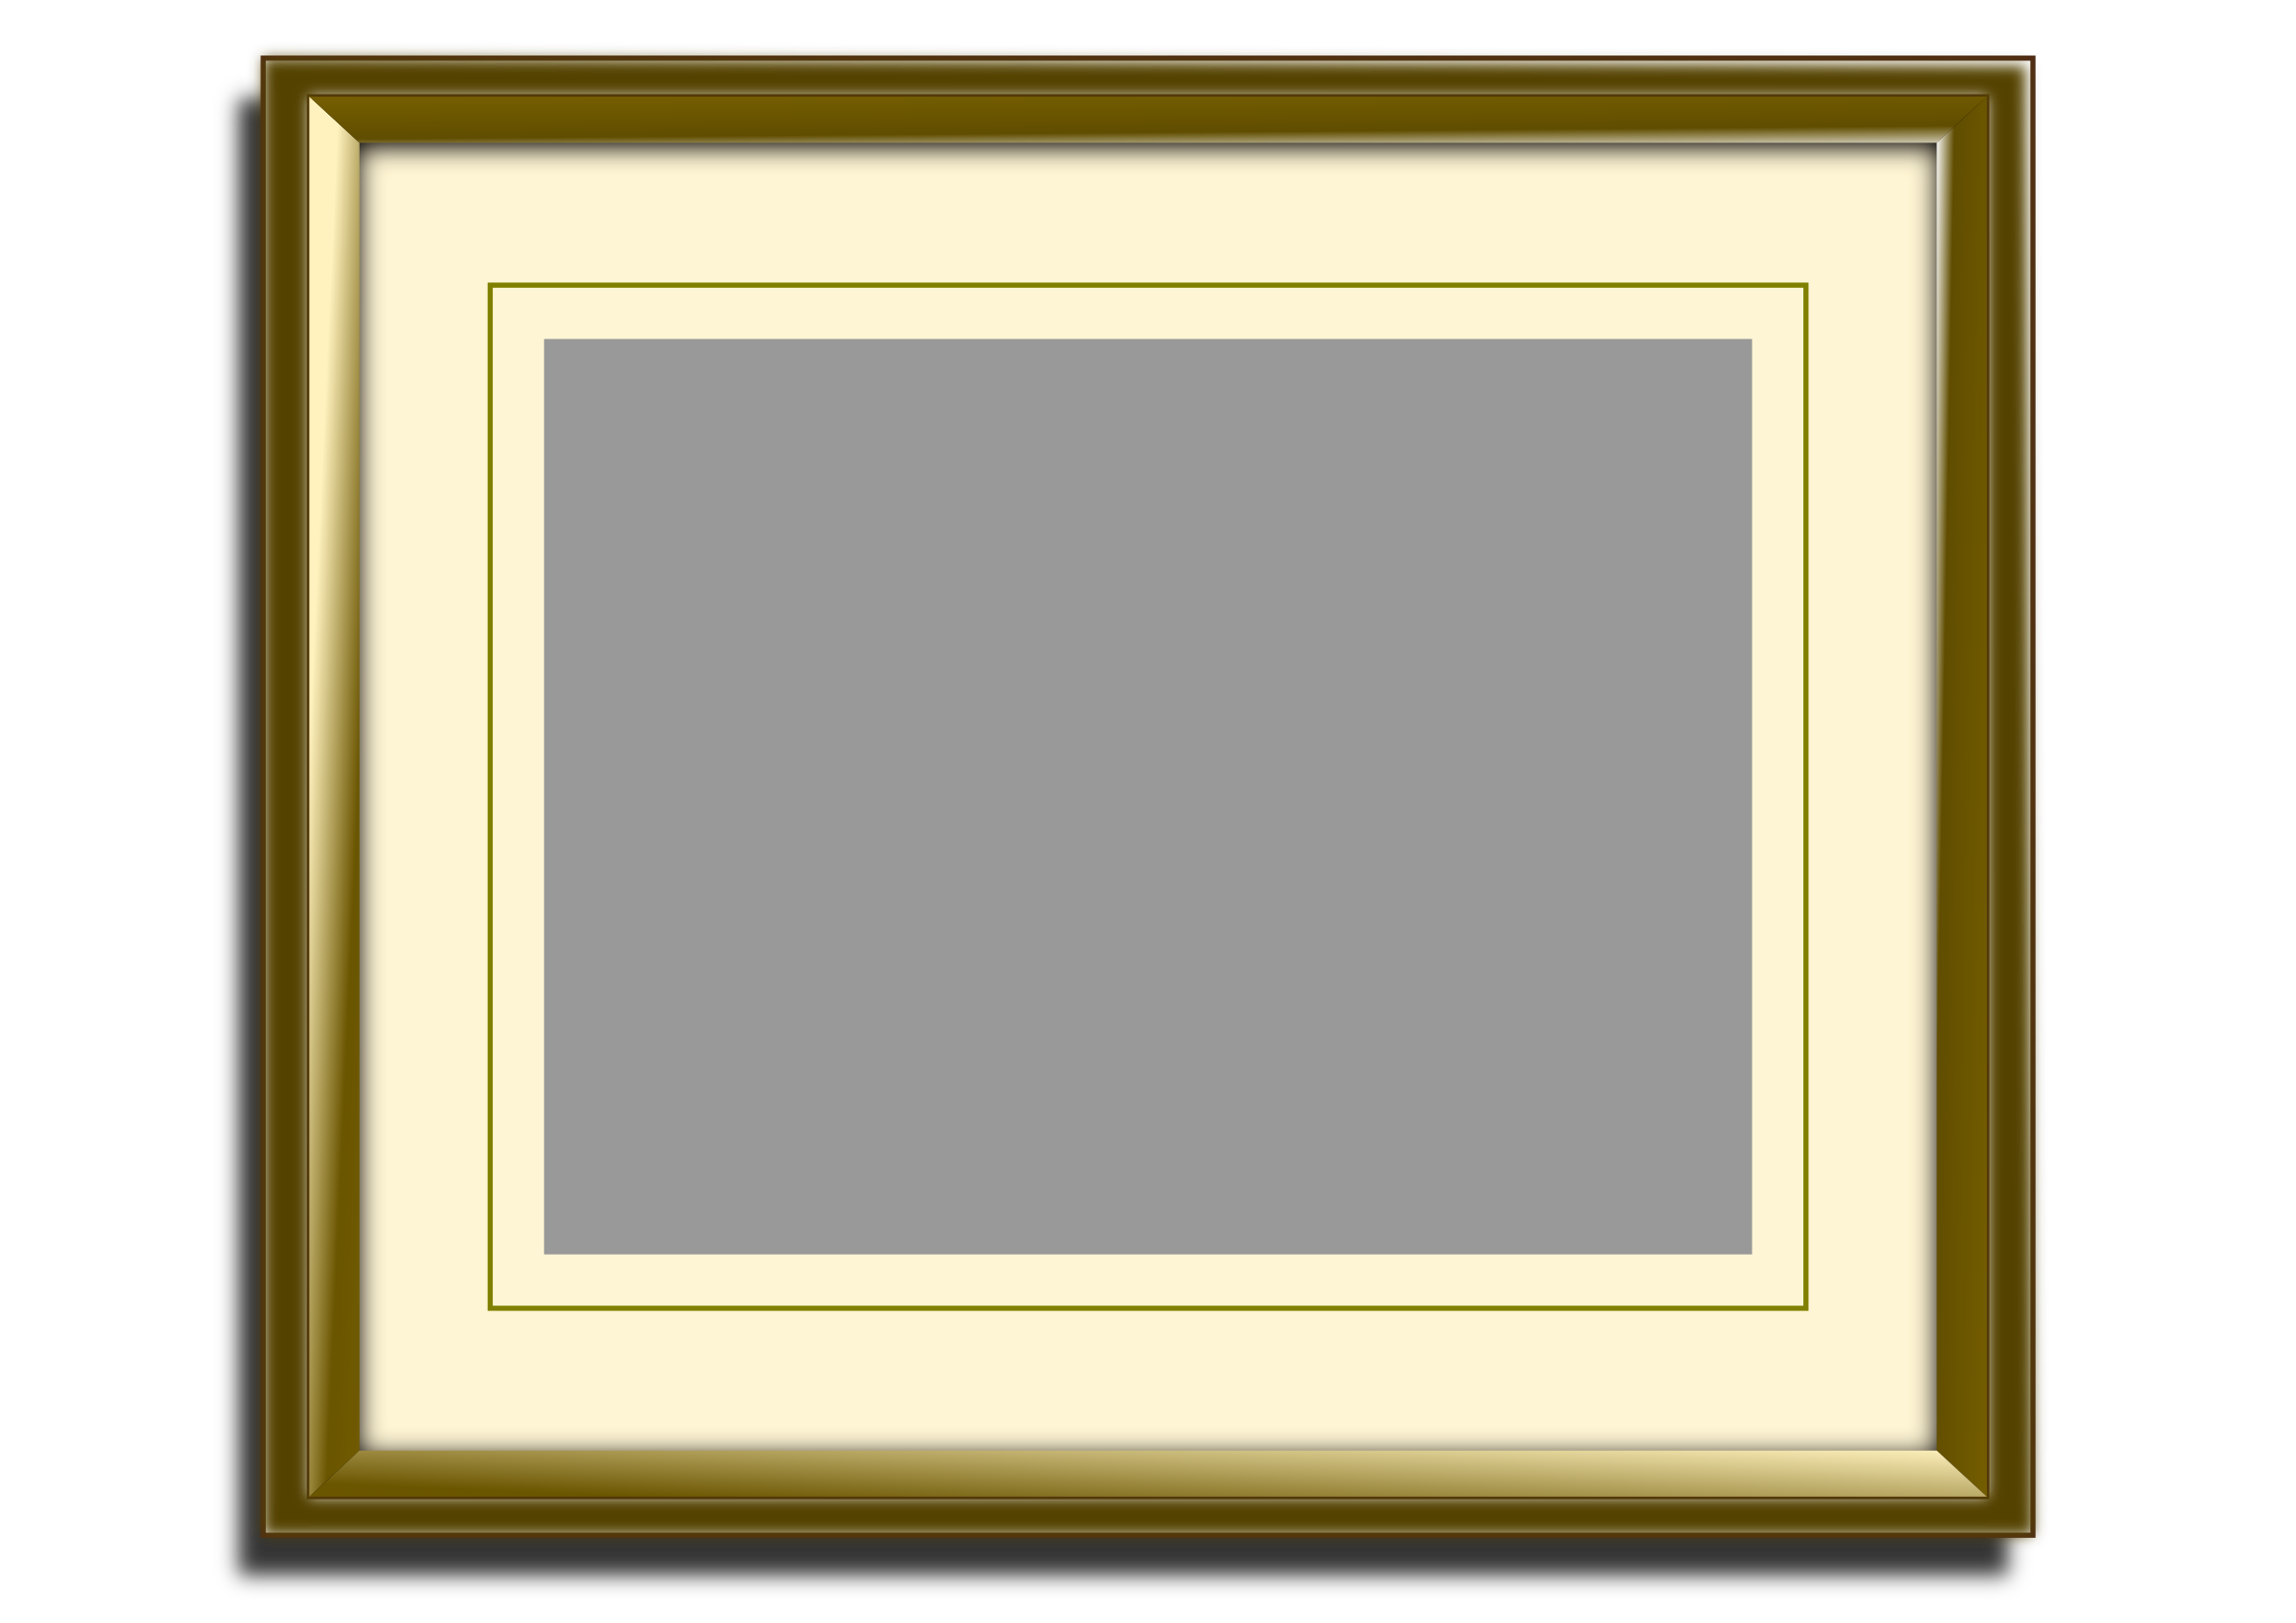 Golden picture frame by tasper